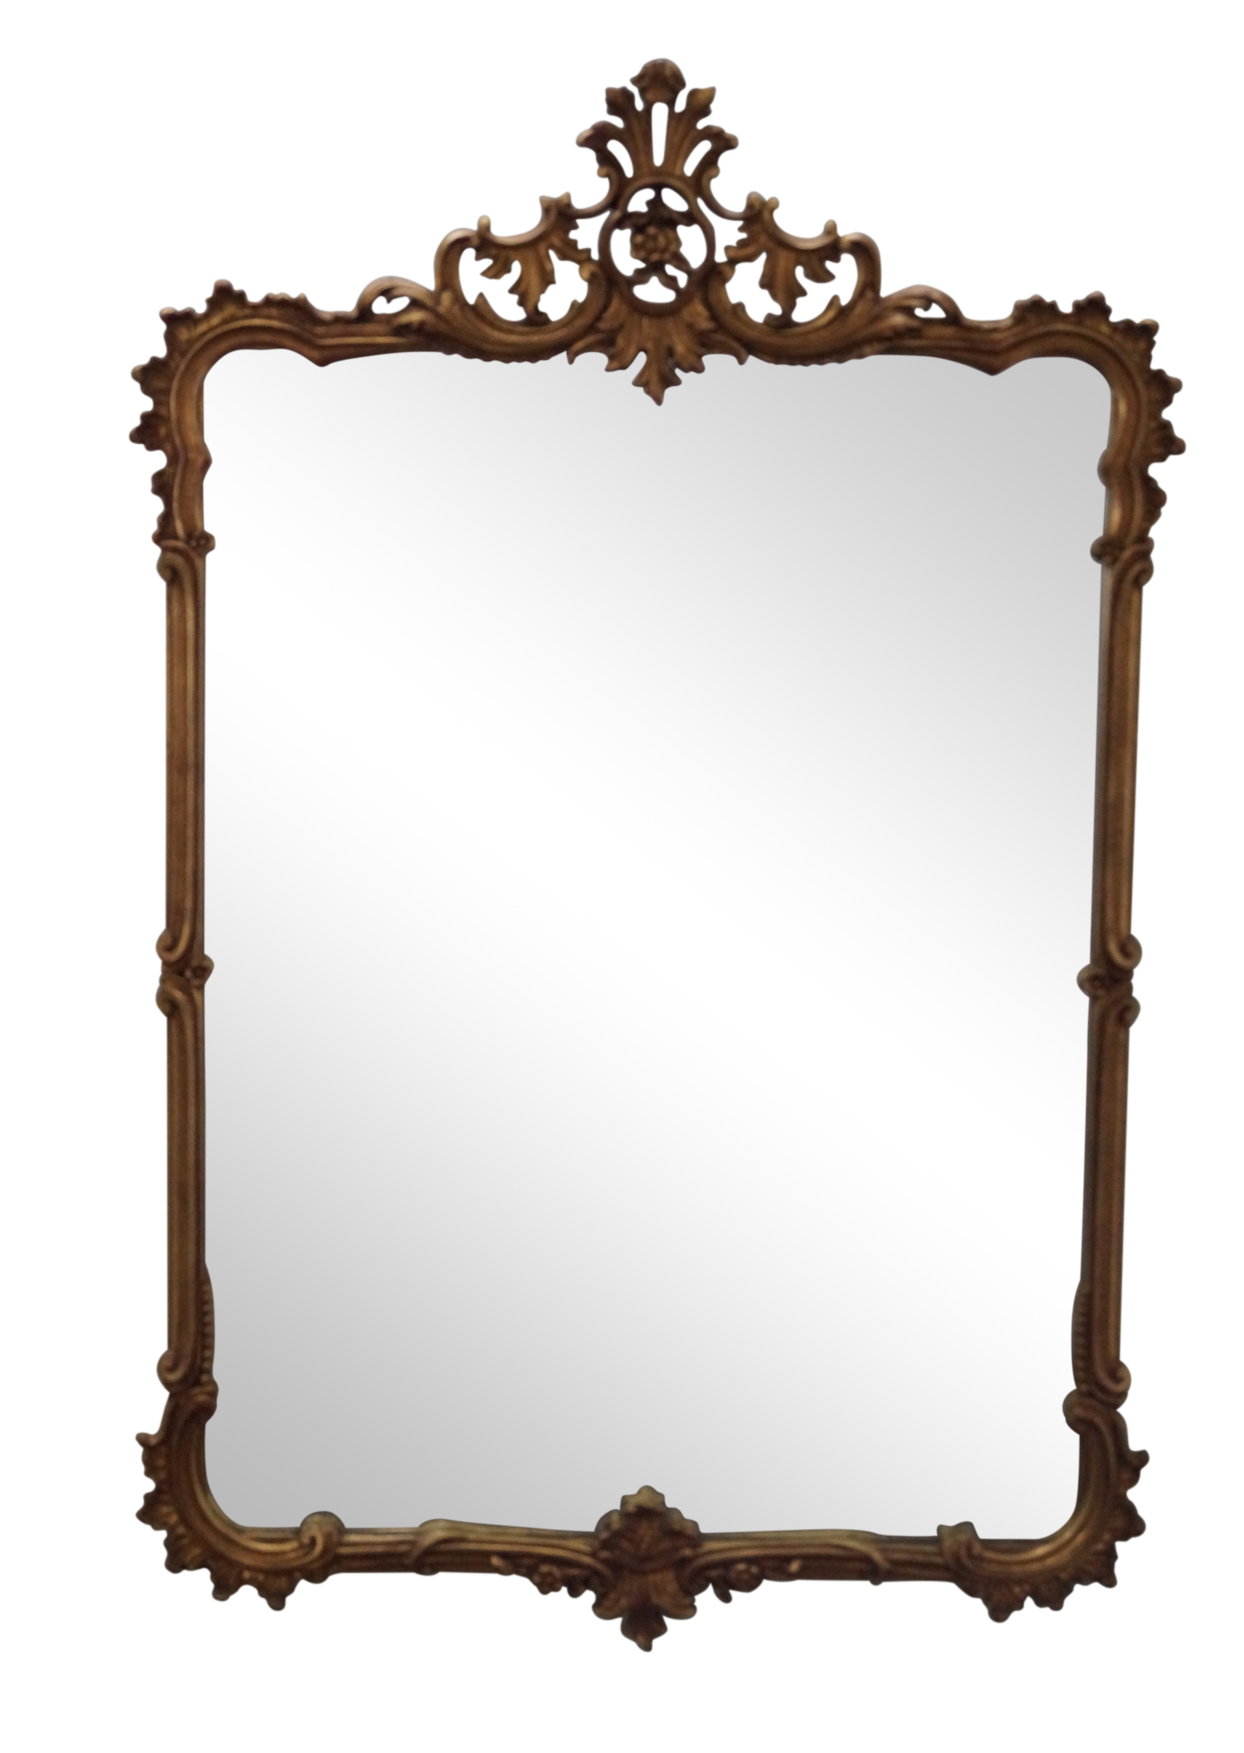 Vintage Faux Bamboo Amp Leaf Carved Wall Mirror Chairish